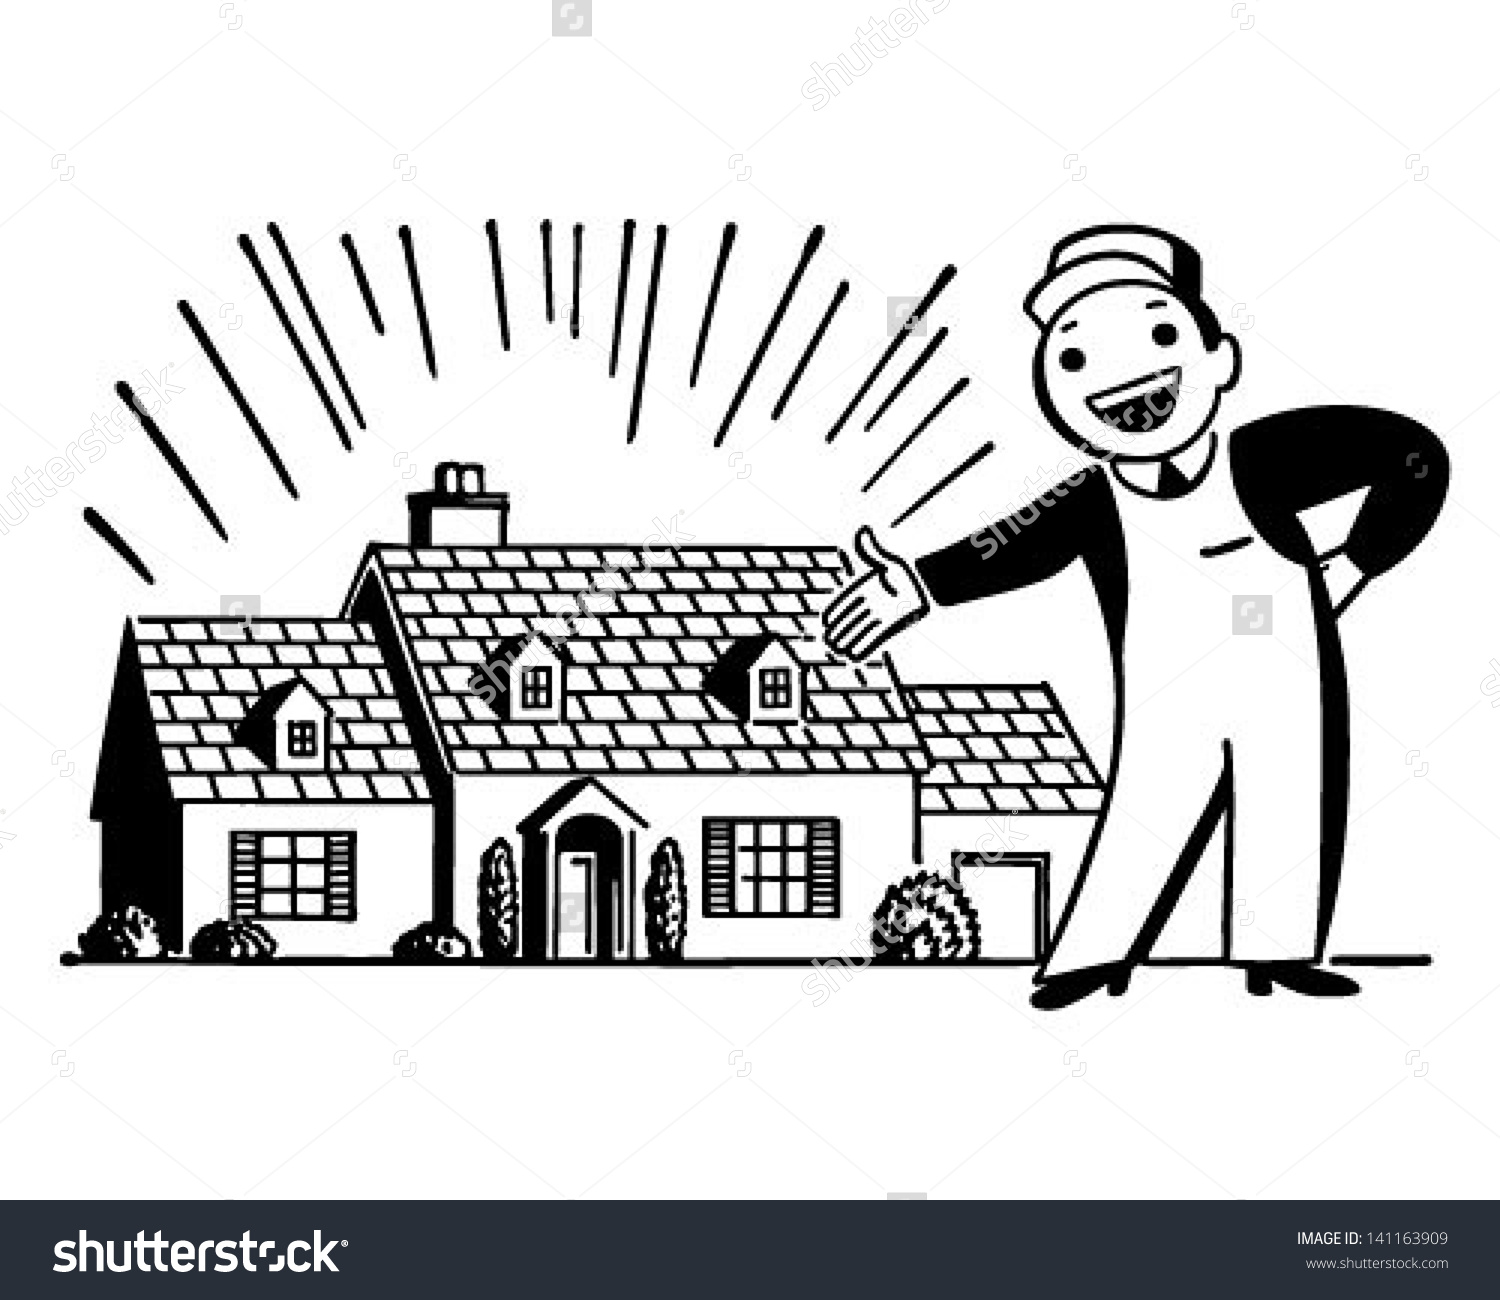 Man Freshly Painted House Retro Clip Stock Vector 141163909.